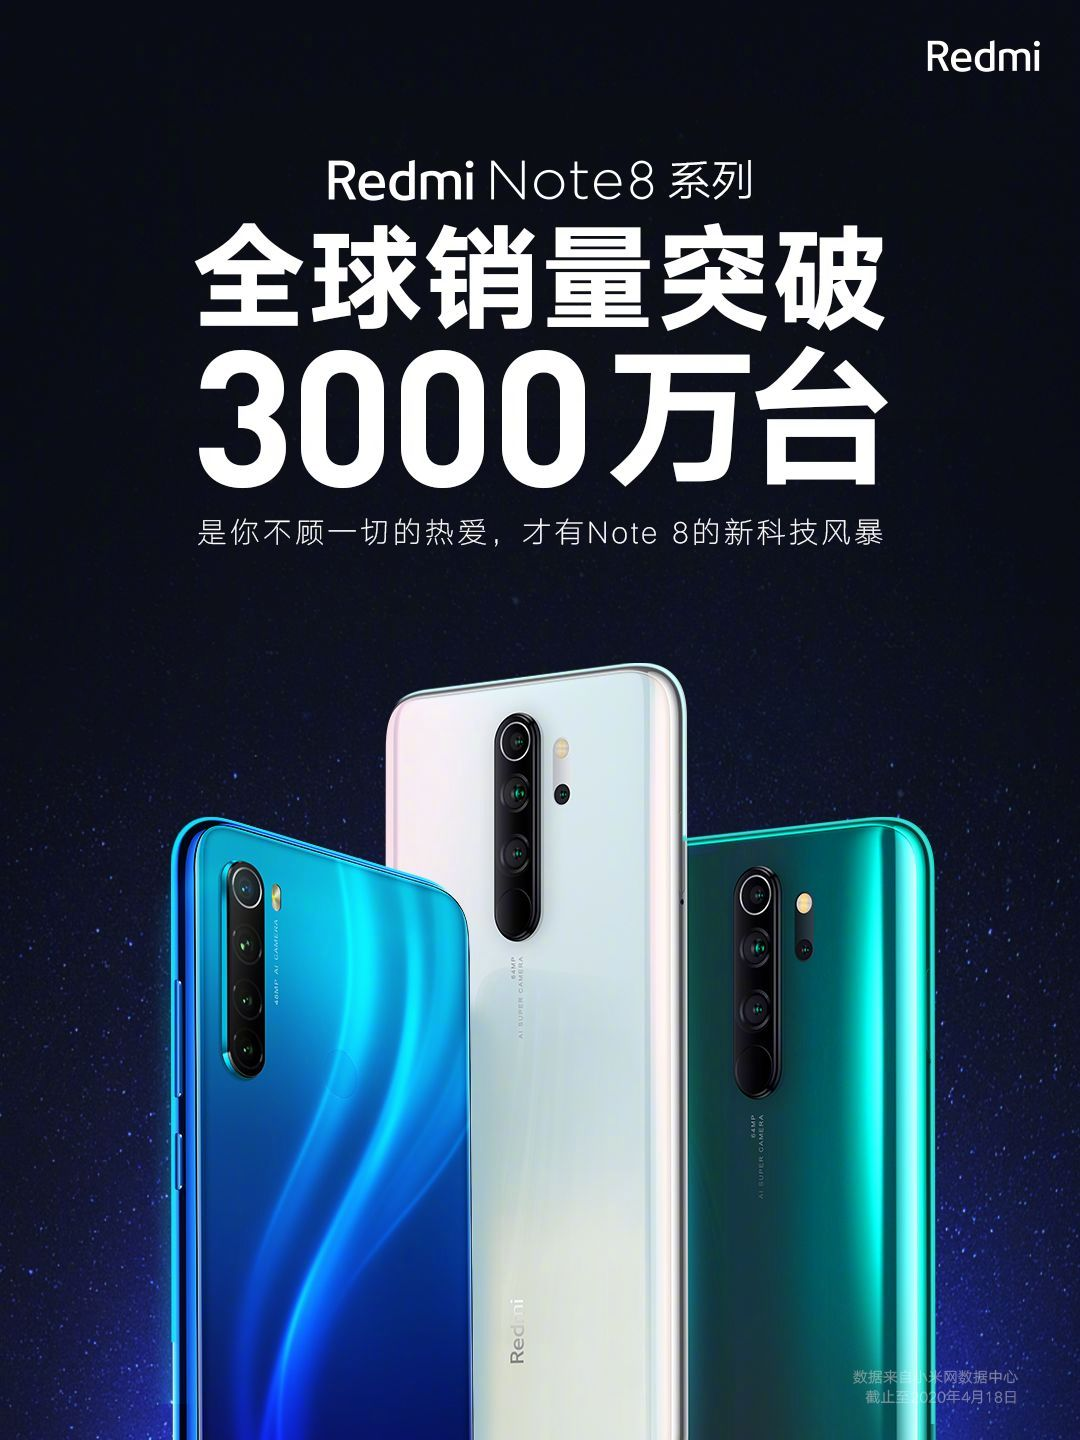 With over 30 million units sold, the Redmi Note 8 Series becomes one of Xiaomi's most successful. Xiaomi Addicts News